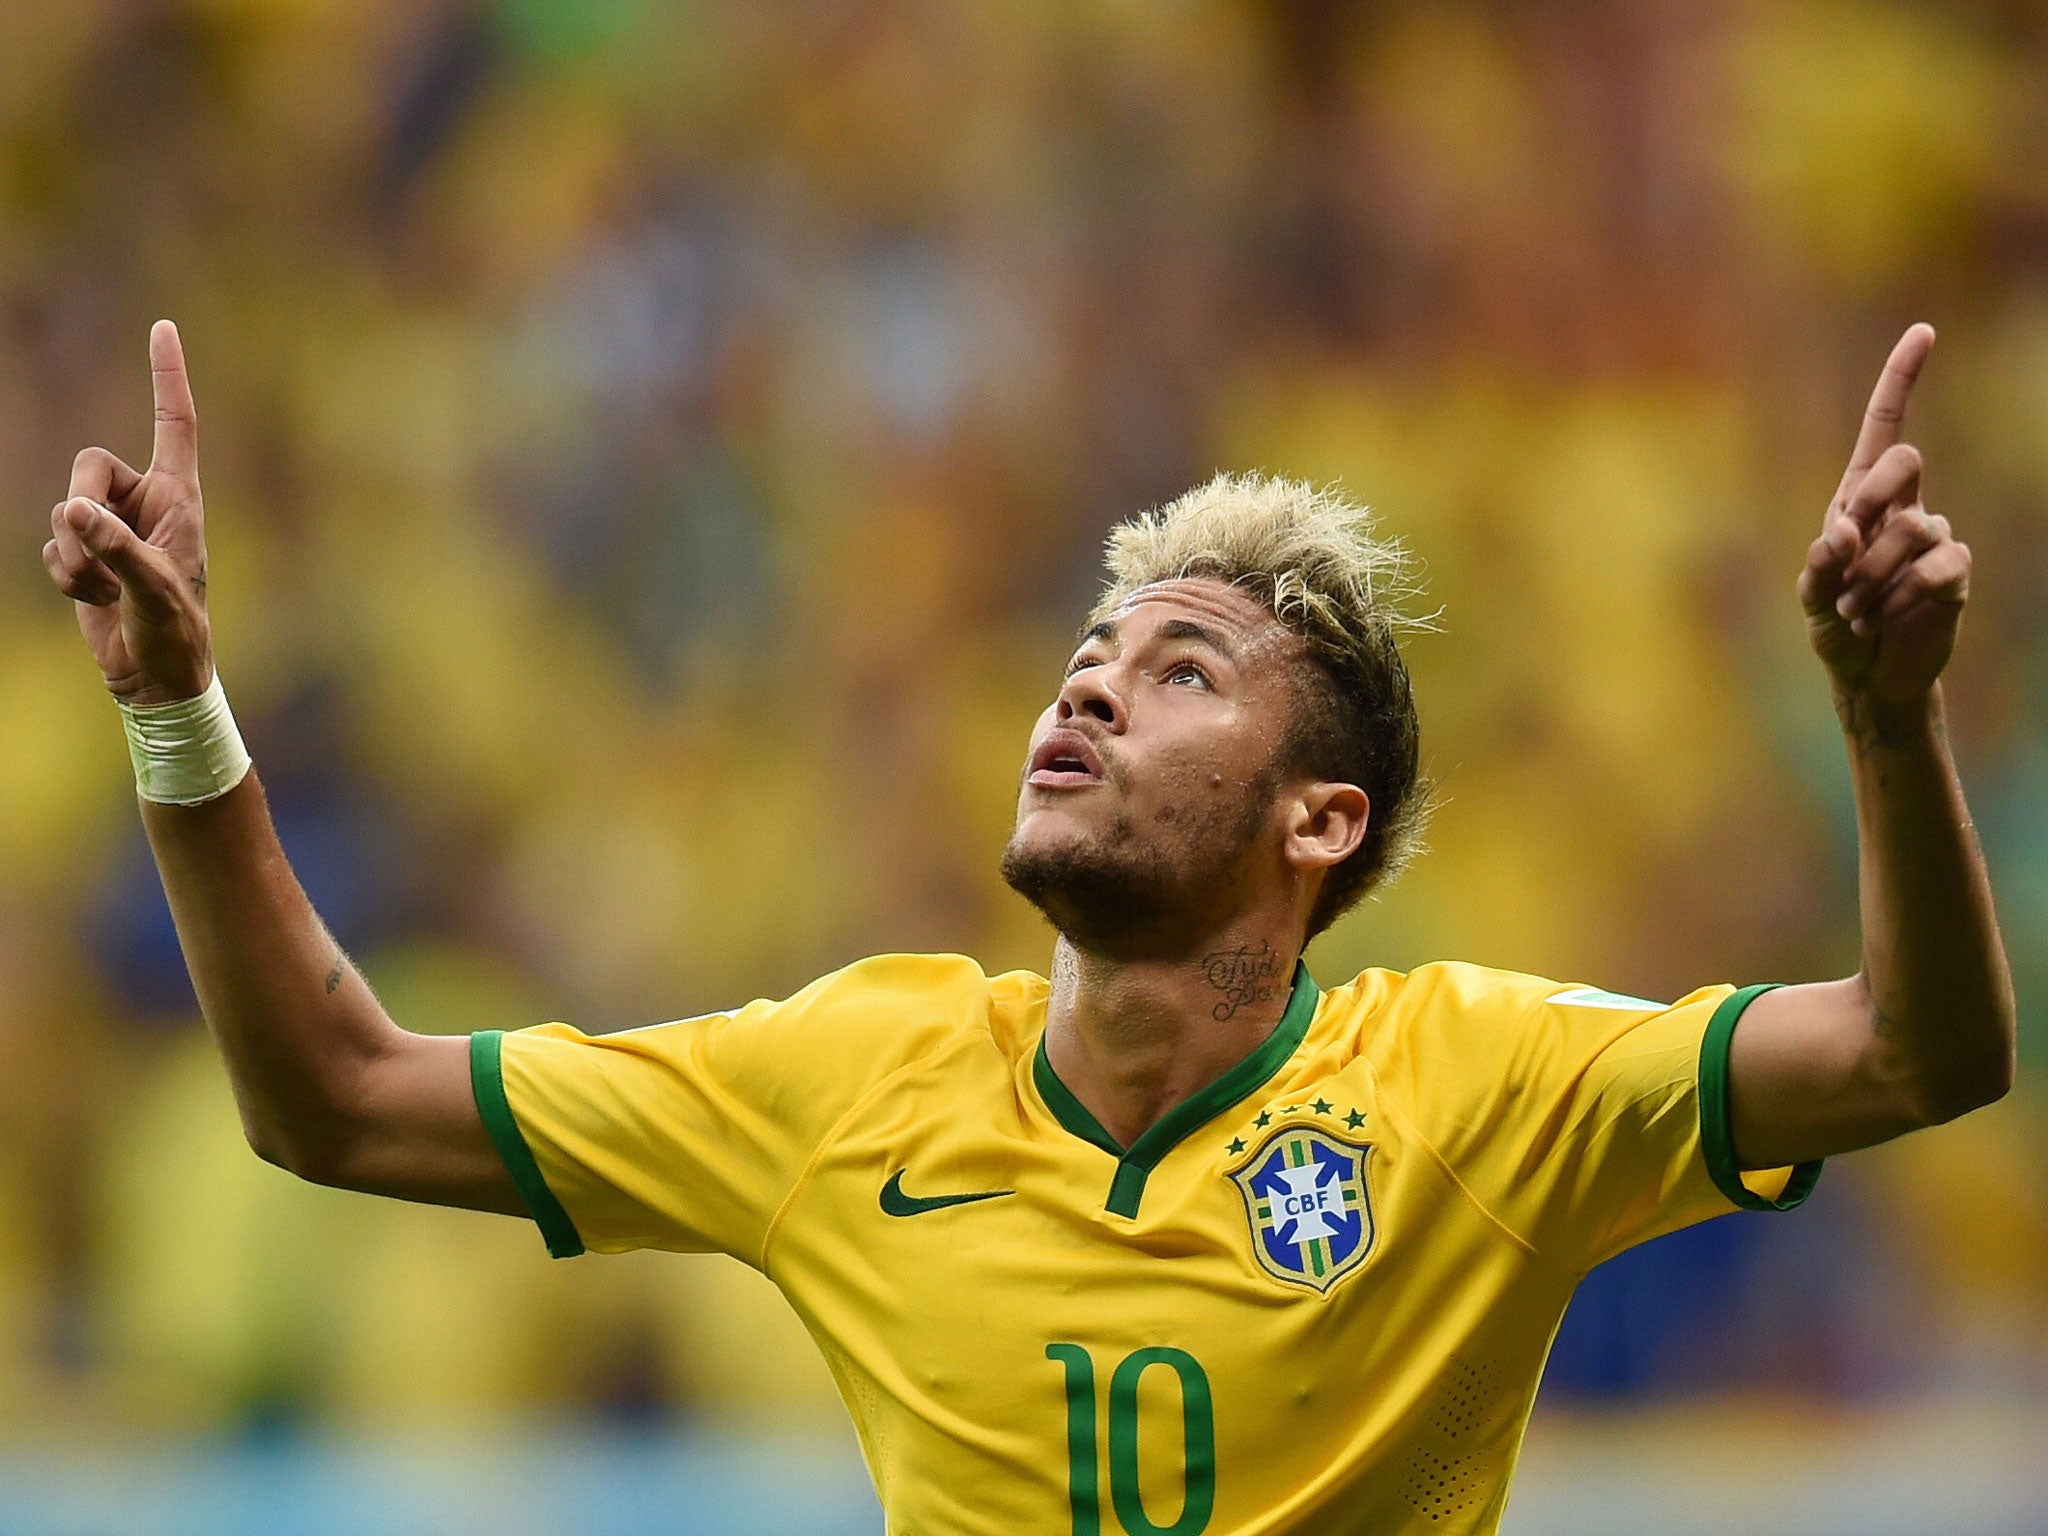 Neymar Out Of World Cup 2014 The Best And Worst Pictures Of Neymar S Impact On The 2014 World